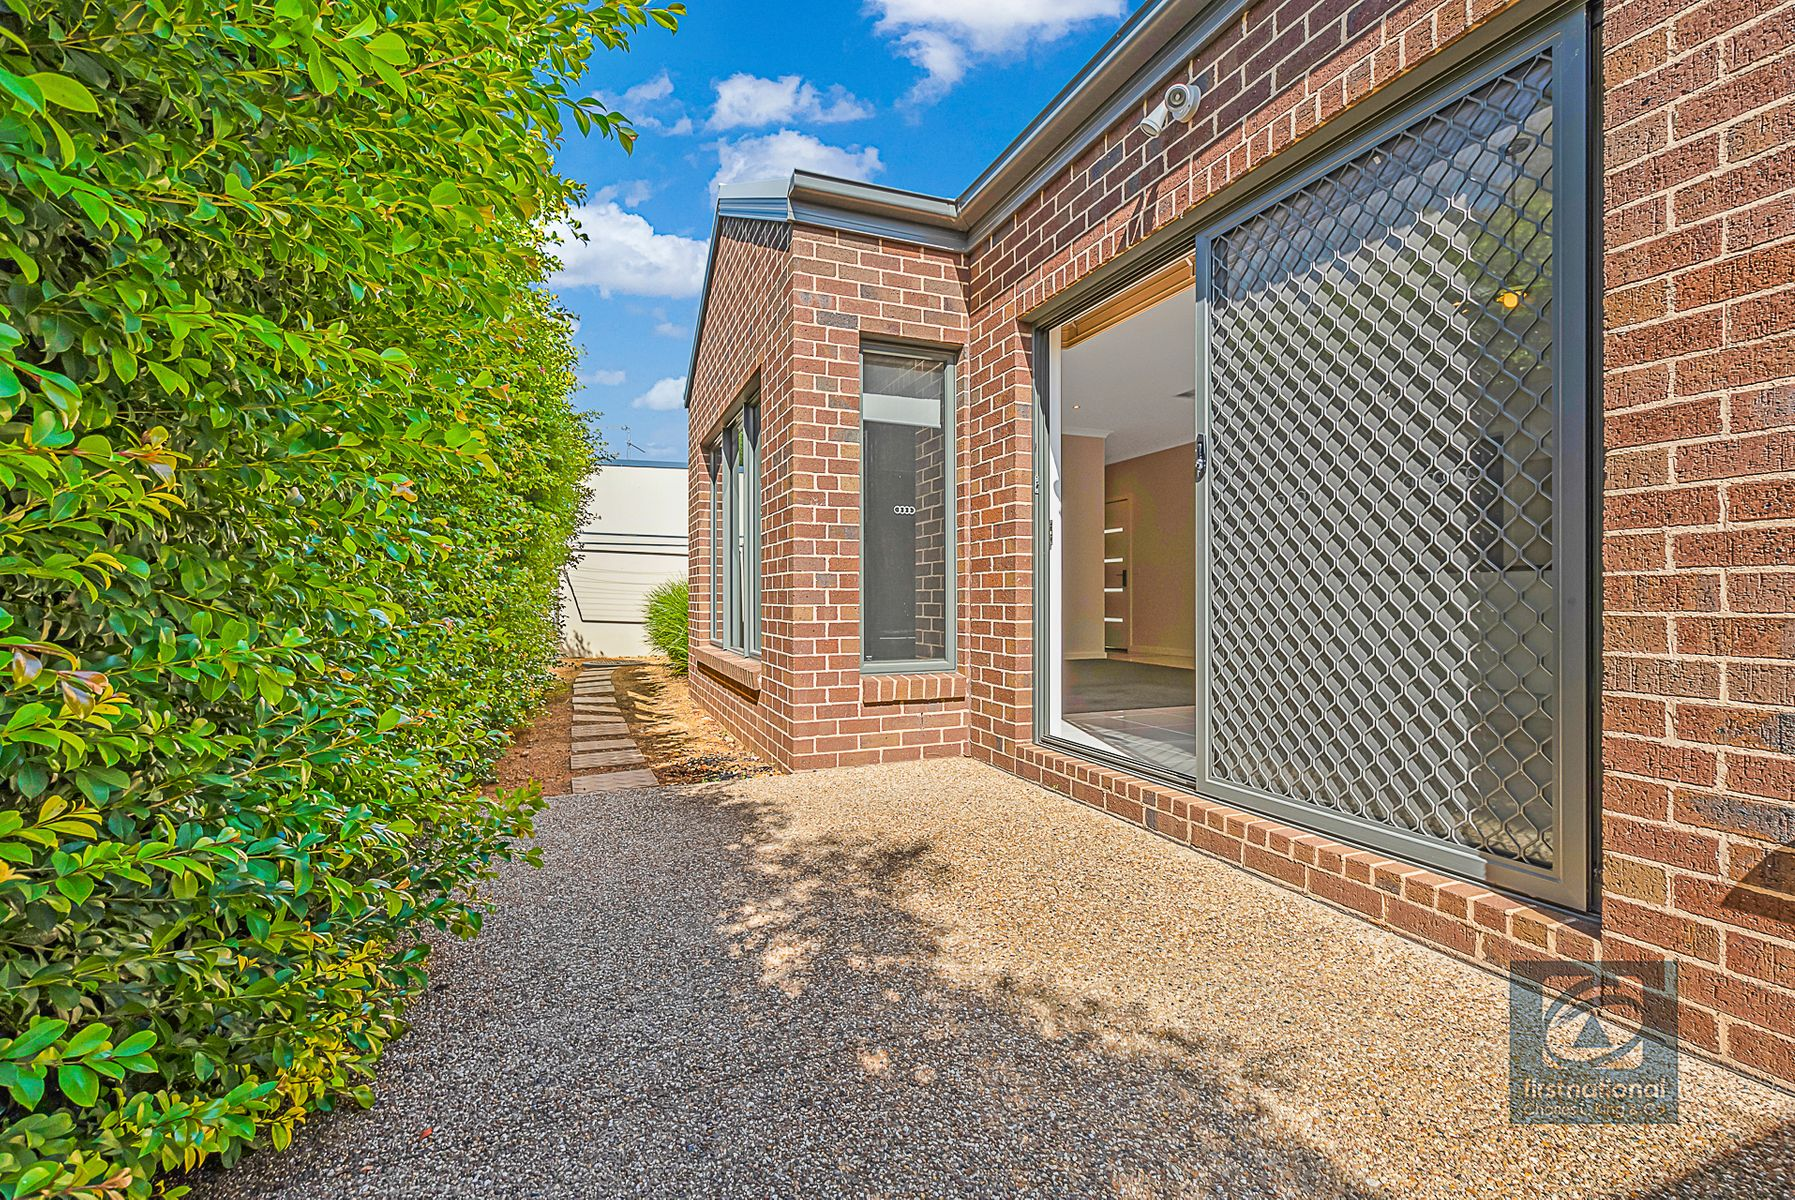 1,2 and 3/116 Sutton Street, Echuca, VIC 3564